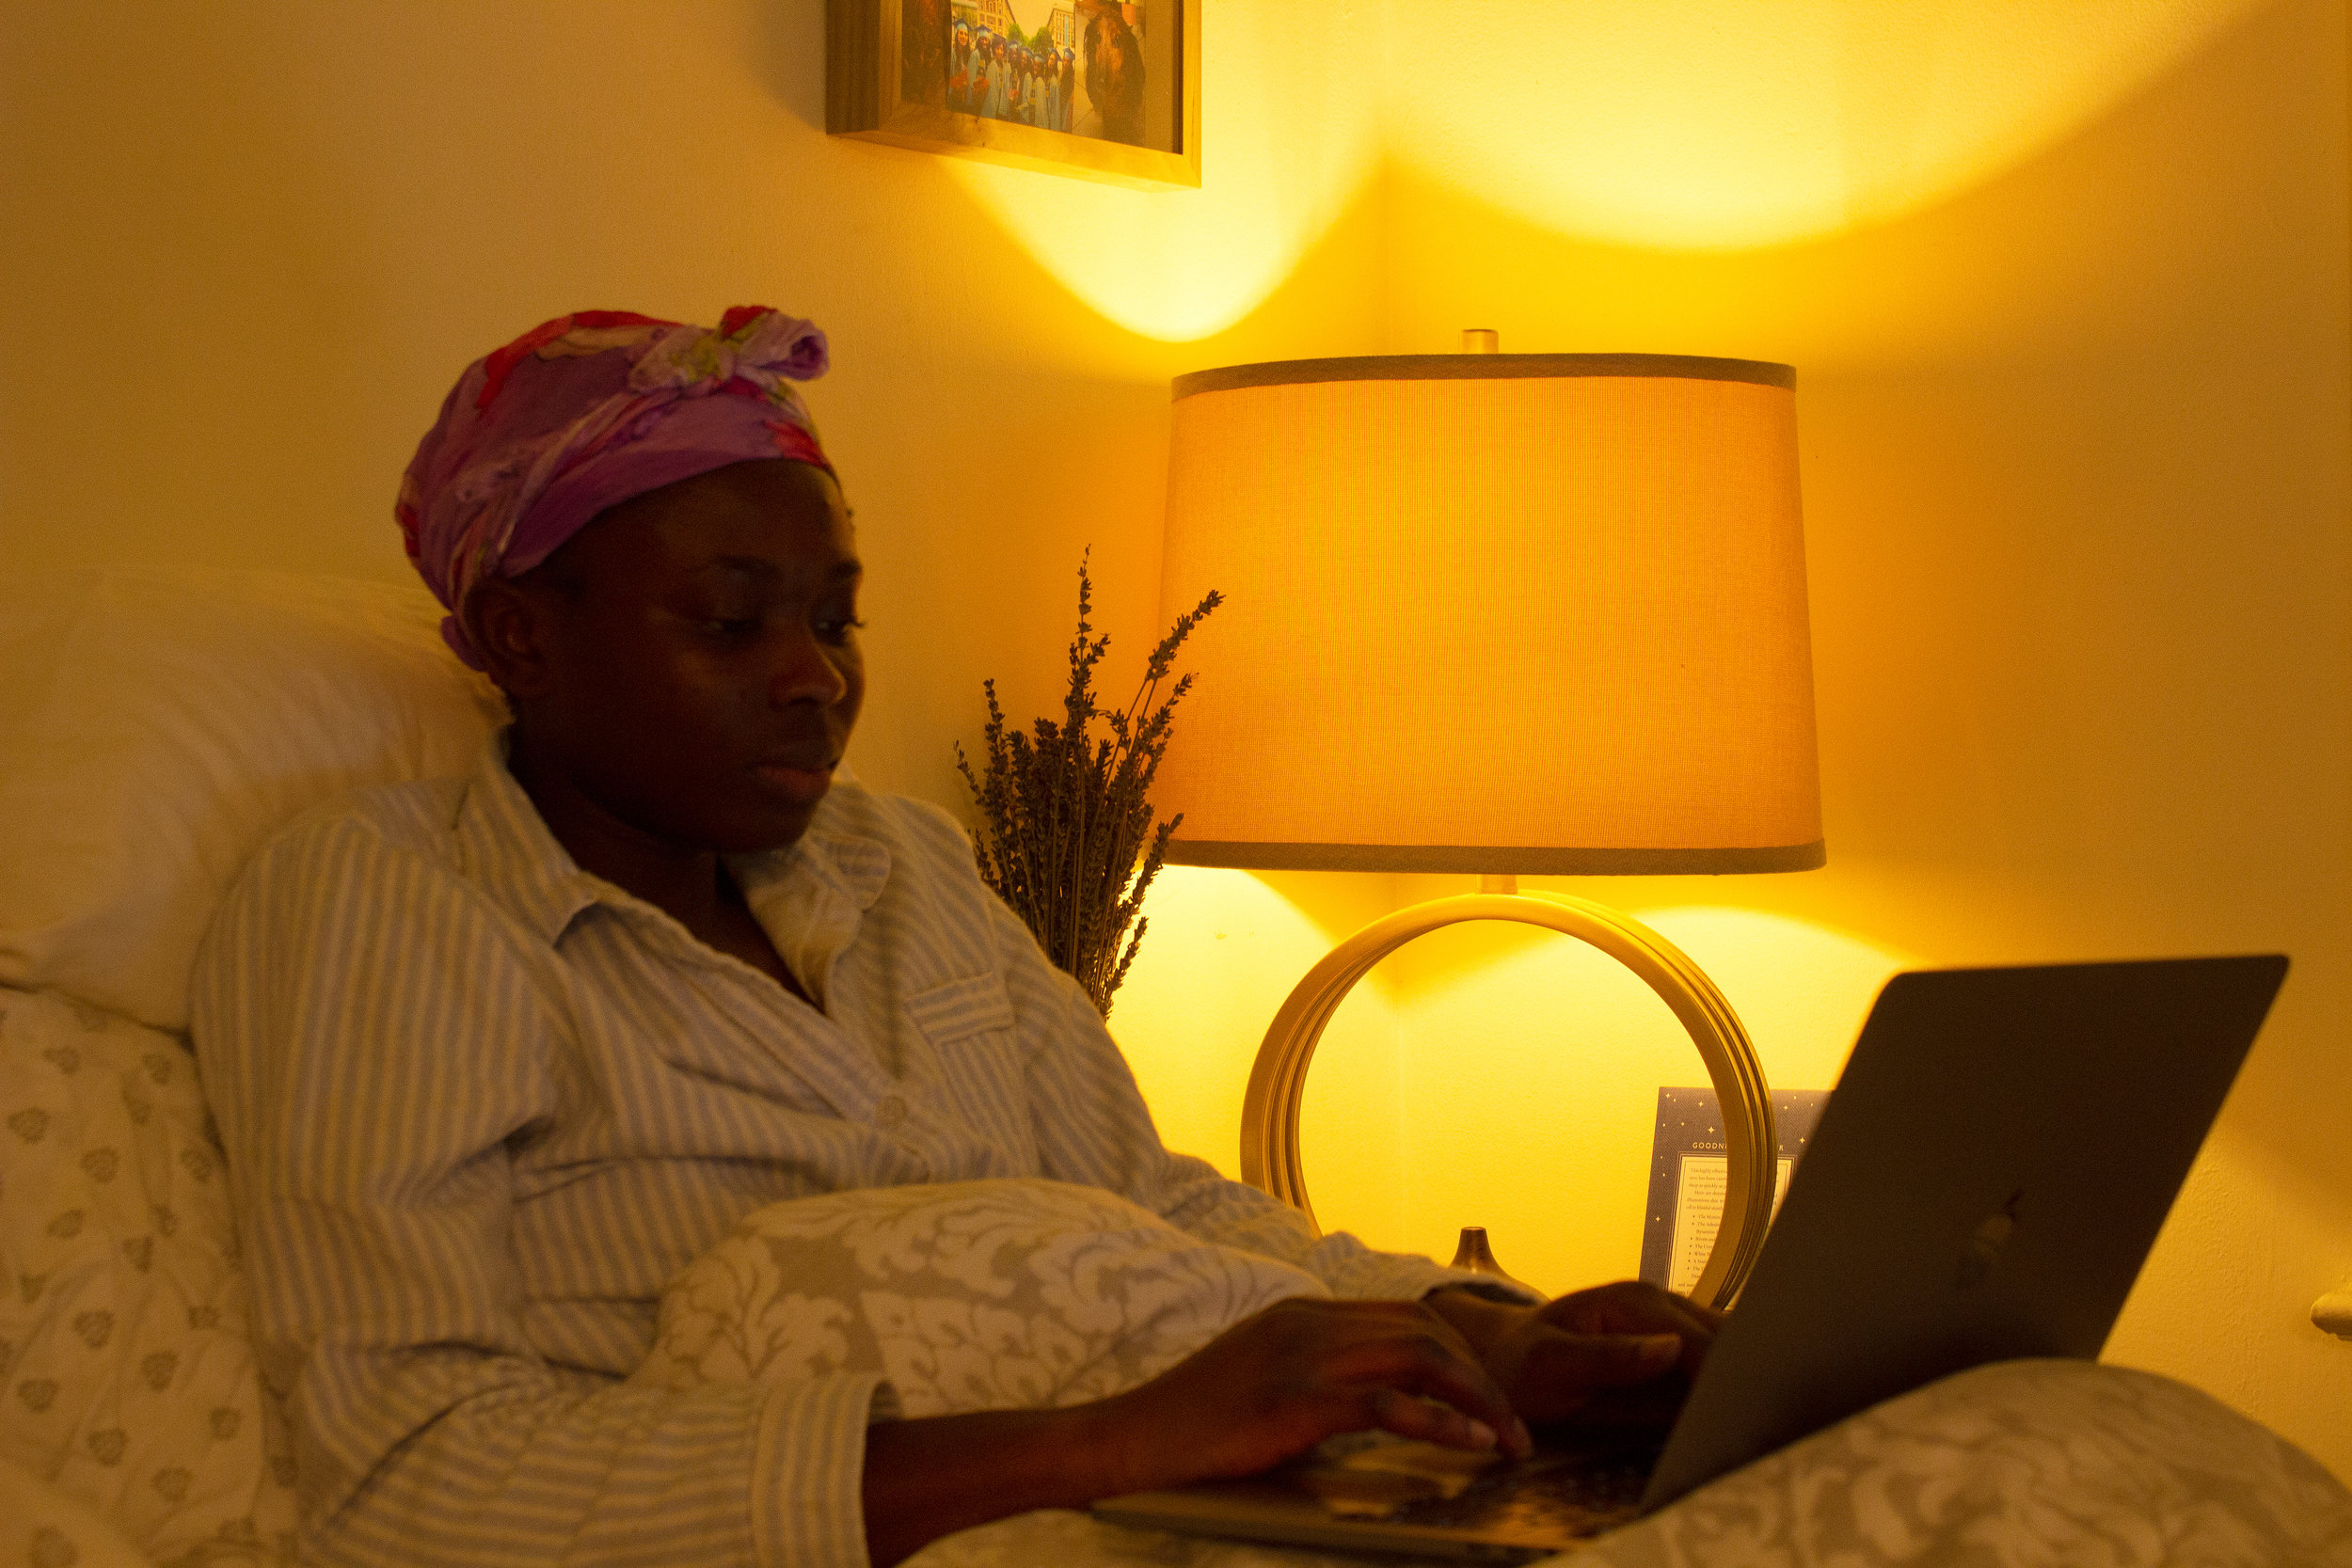 Adefunke Sonaike, 24, finishes a class assignment in her bed before going to sleep.